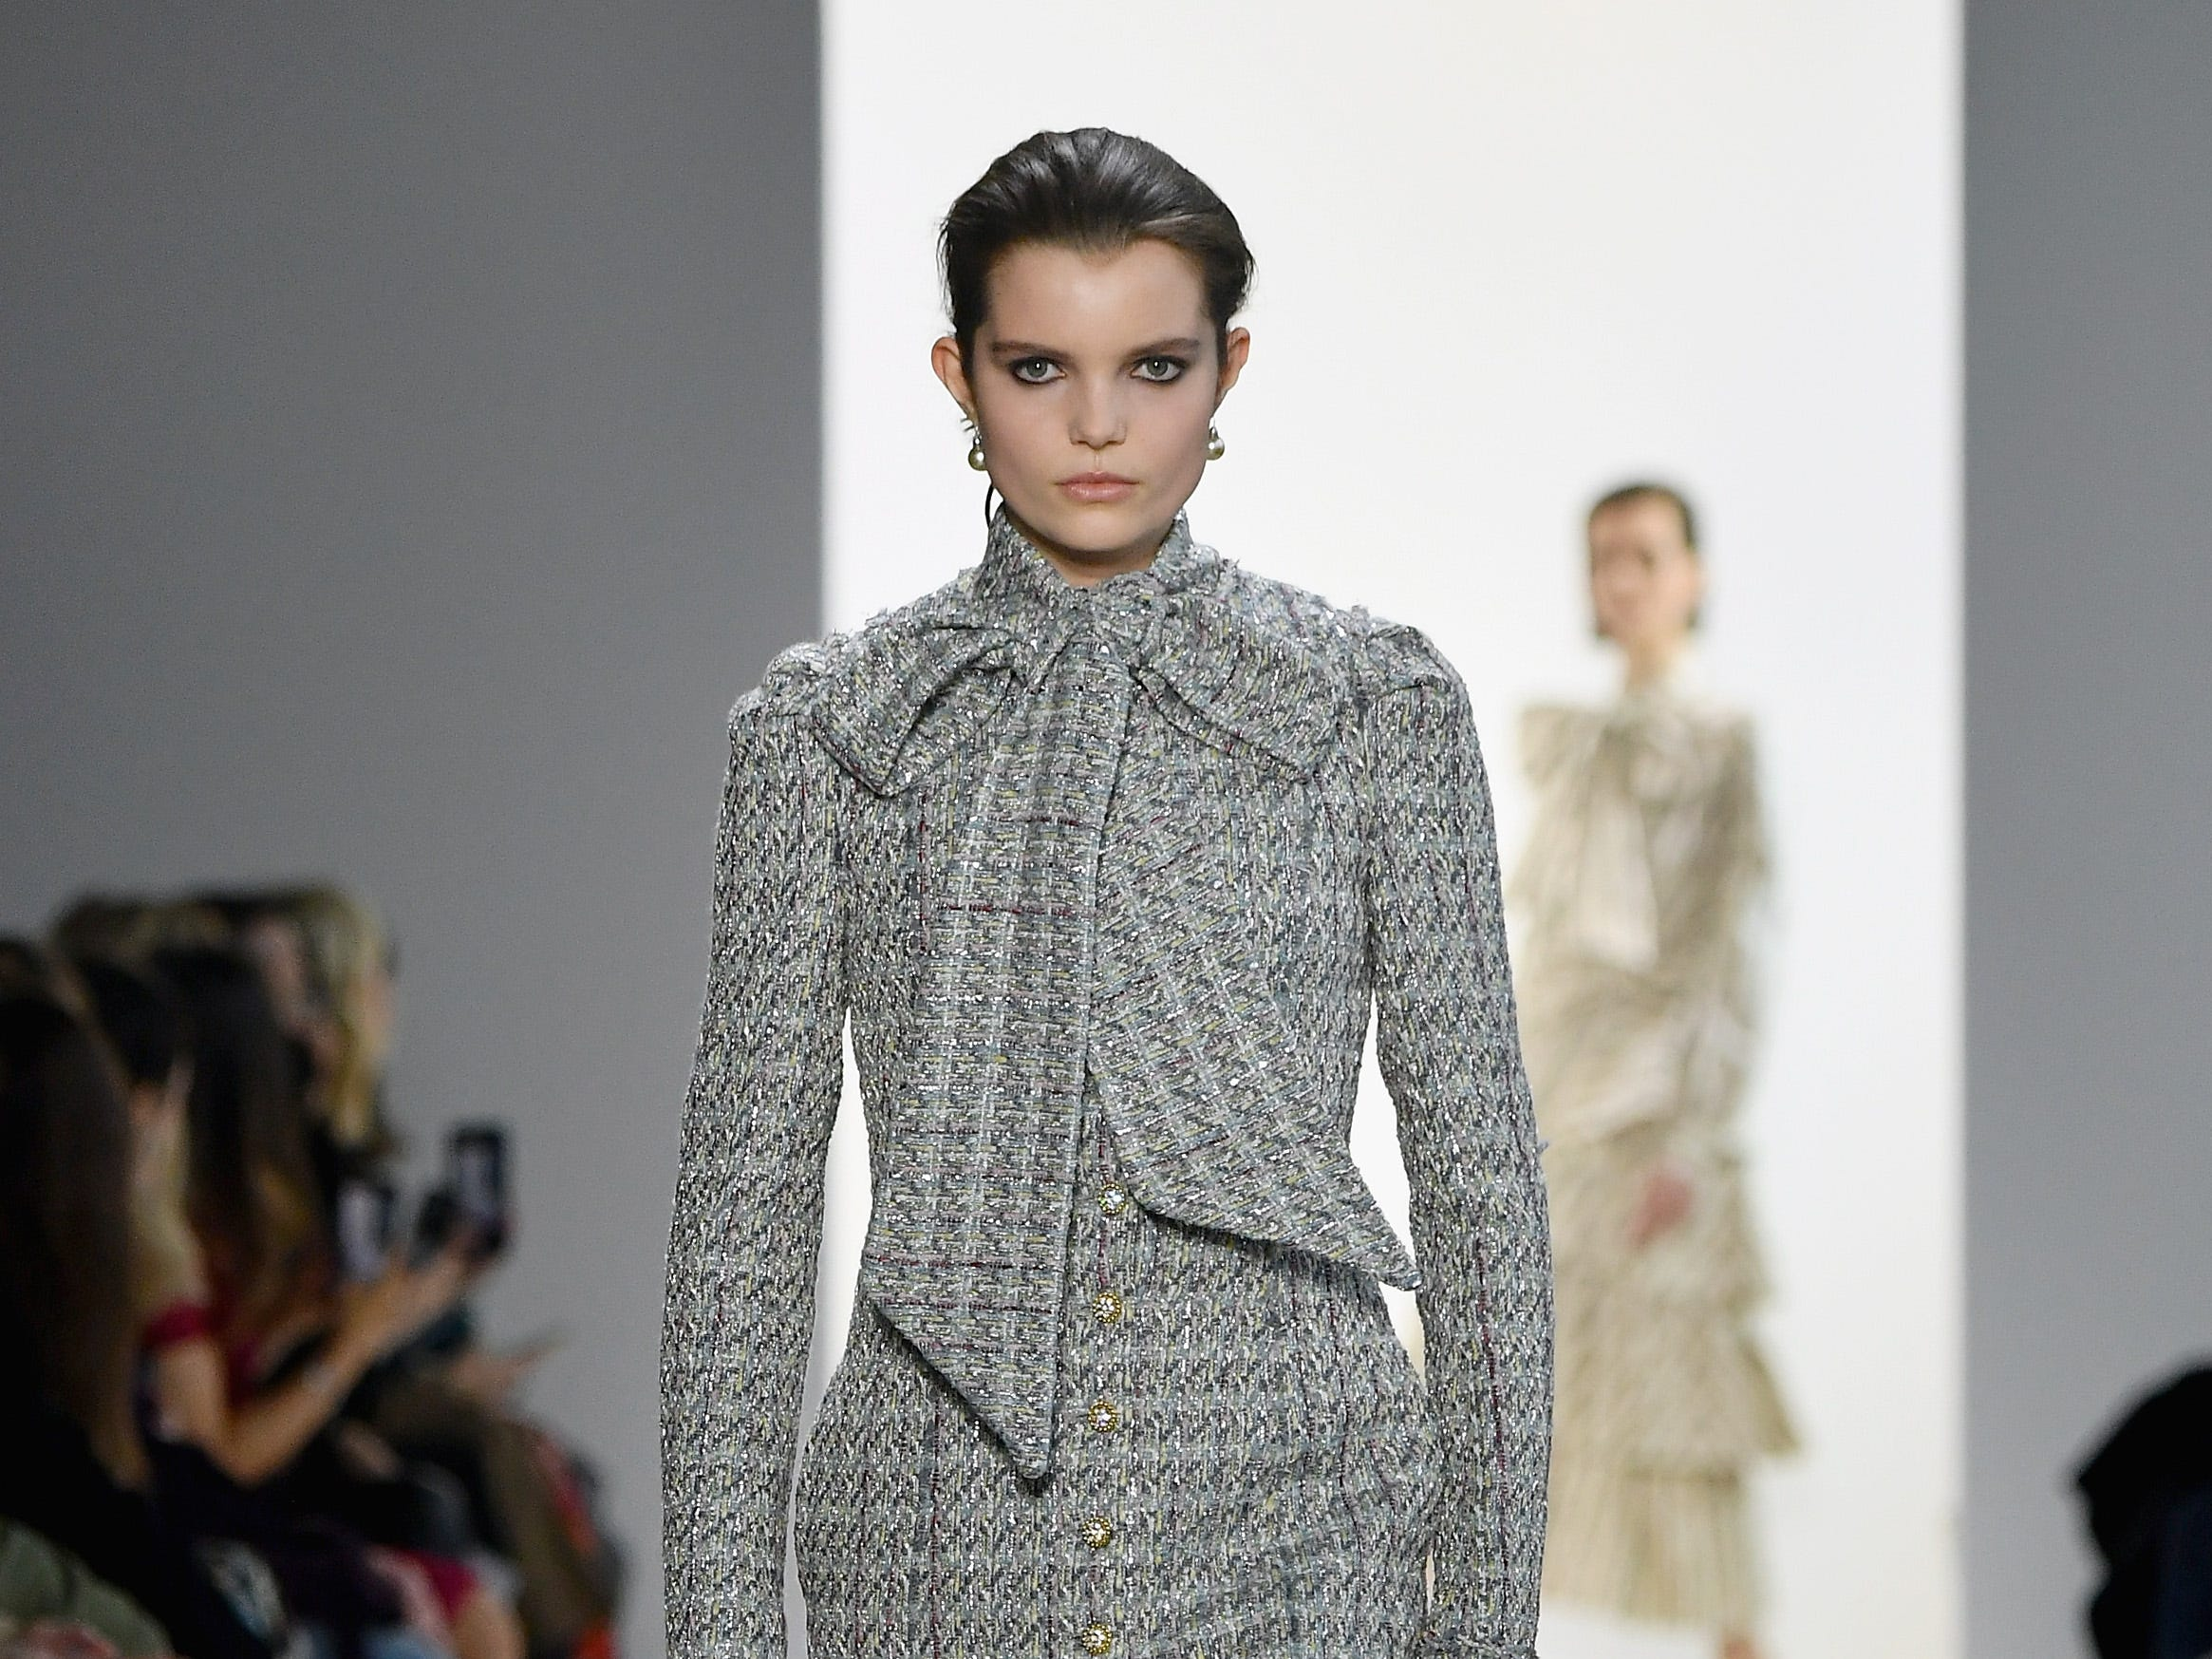 NEW YORK, NY - FEBRUARY 08:  A model walks the runway for the Brock Collection fashion show during New York Fashion Week: The Shows at Gallery I at Spring Studios on February 8, 2019 in New York City.  (Photo by Mike Coppola/Getty Images for NYFW: The Shows) ORG XMIT: 775289359 ORIG FILE ID: 1095510646